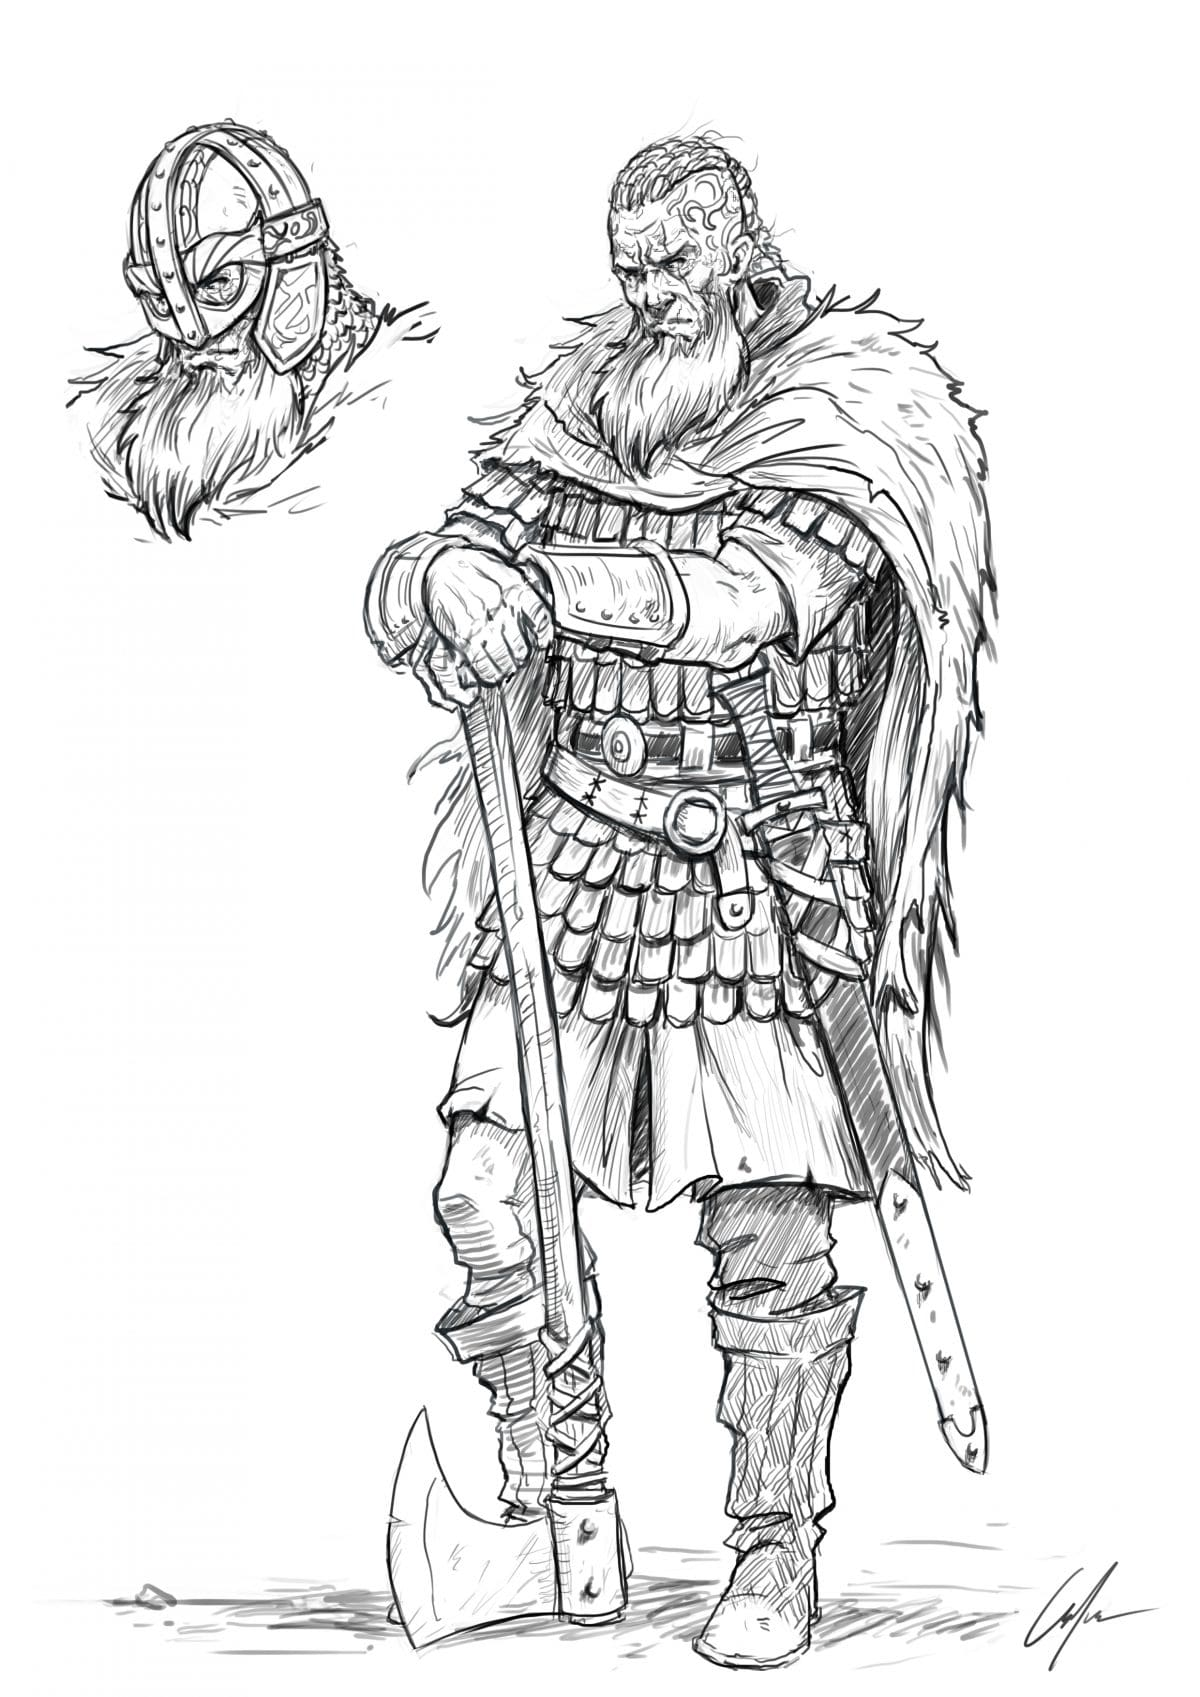 How To Draw A Viking Easy To Follow Step By Step Tutorial